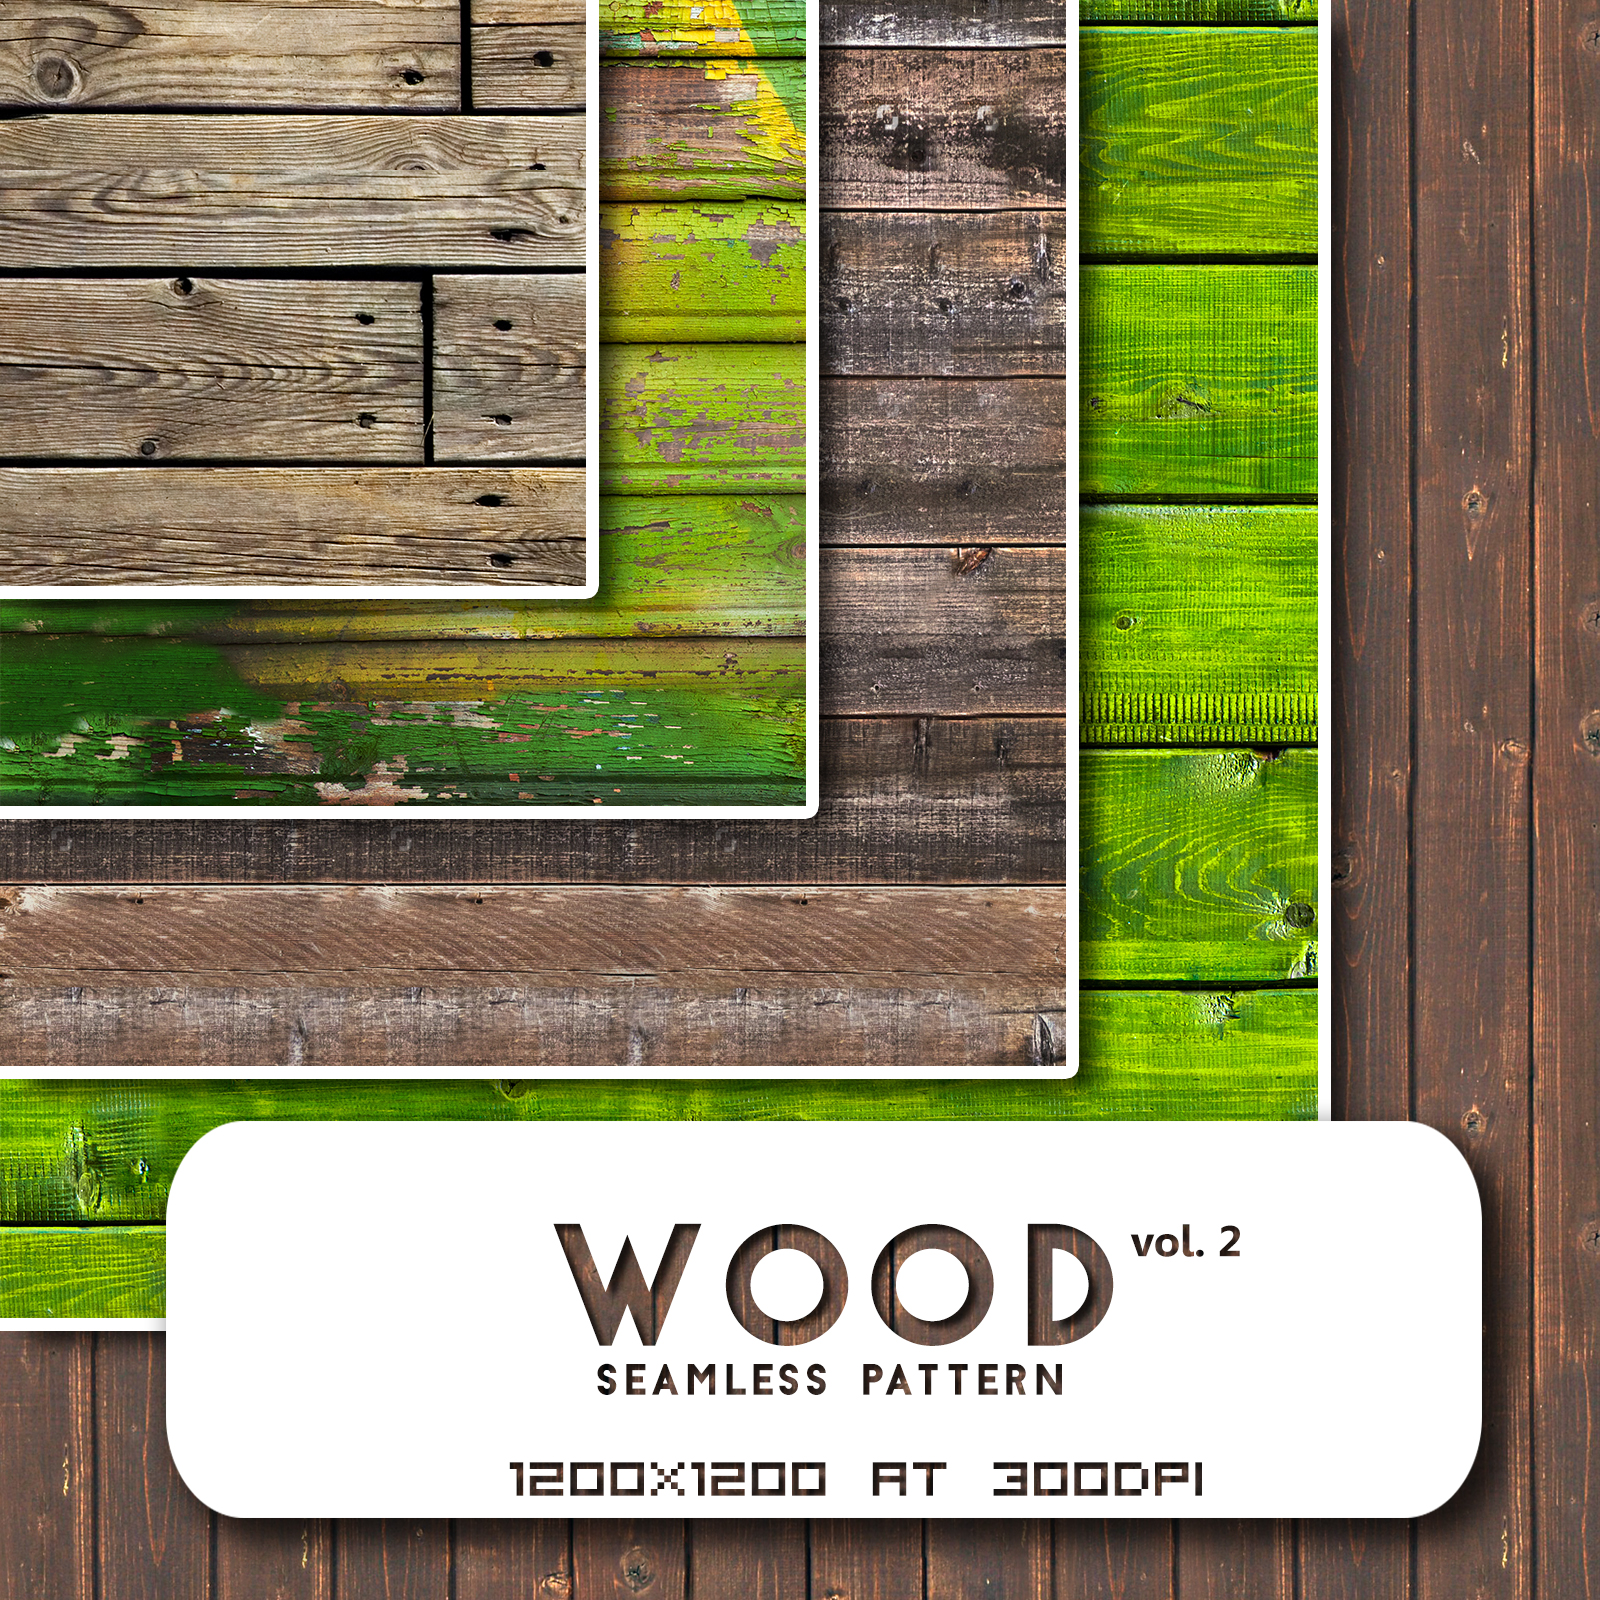 Wood vol.2 :: Seamless Pattern